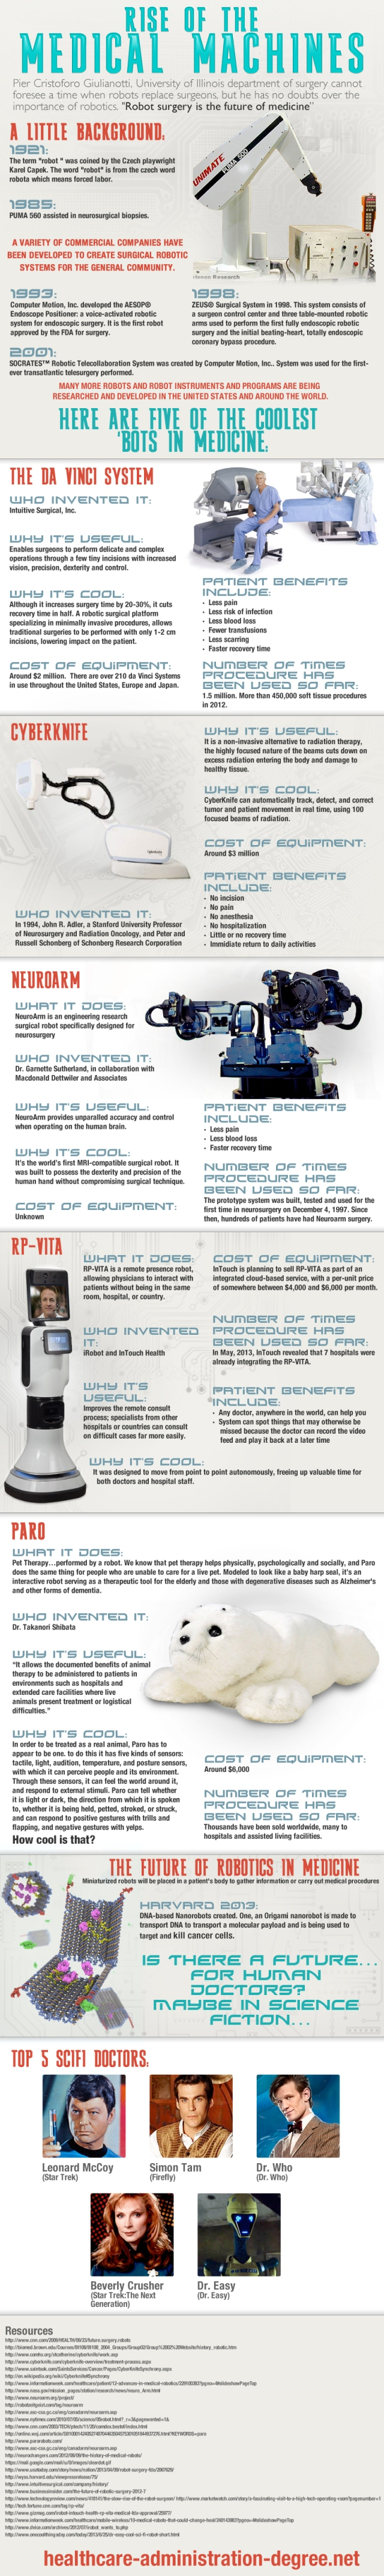 Medical Robot Infographic